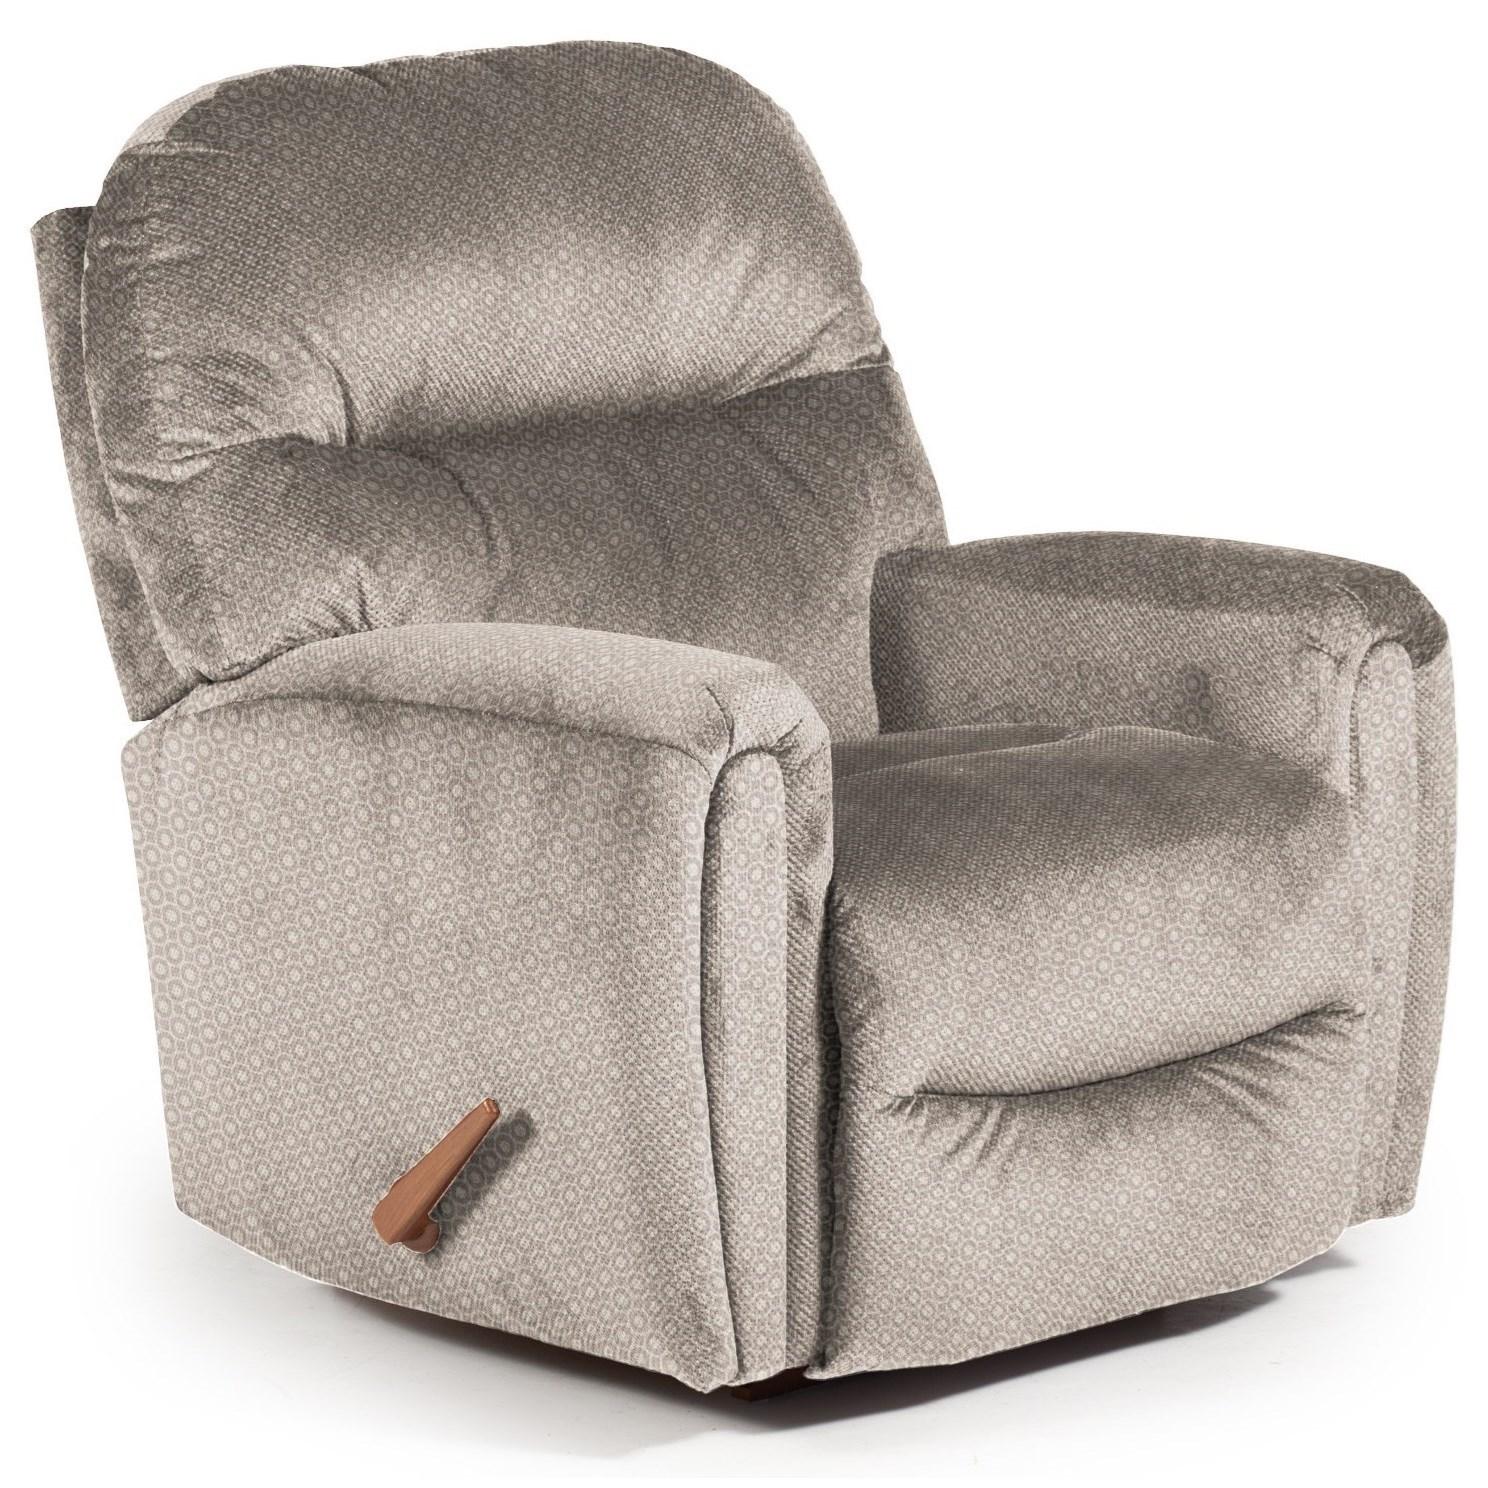 Best Home Furnishings Recliners - Medium Markson Power Space Saver Recliner - Item Number: 653357800-28718